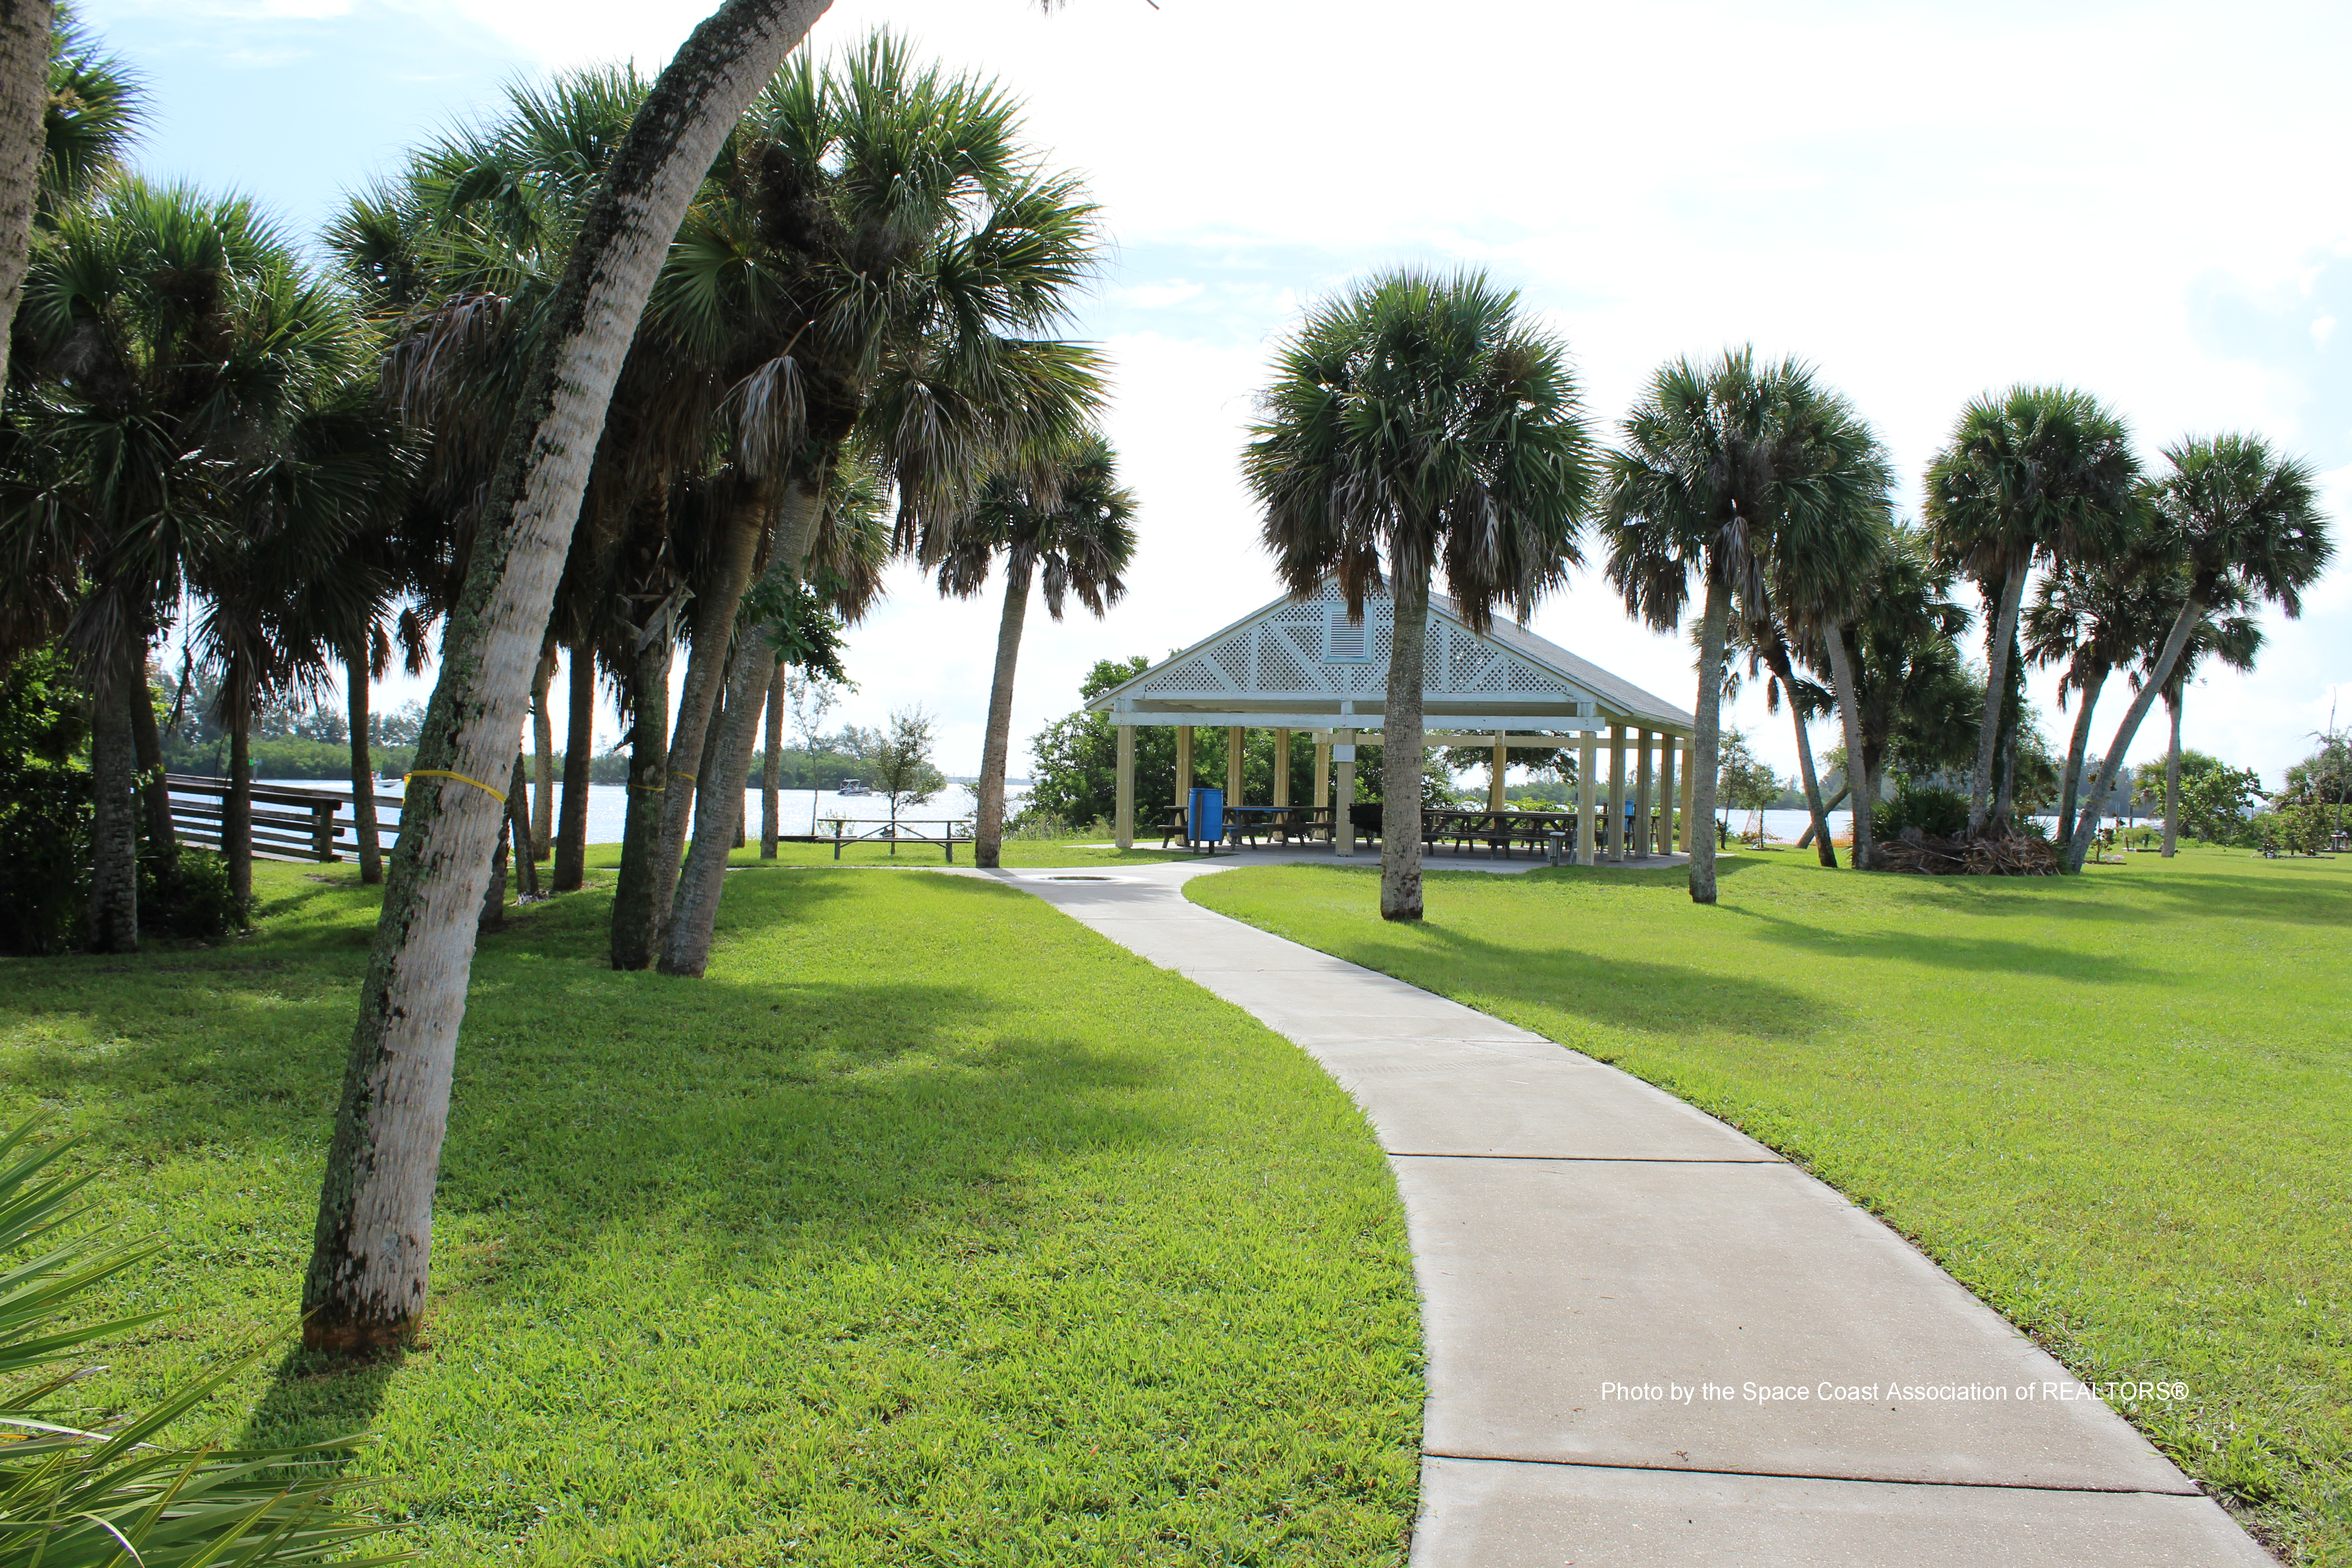 Pathway to pavilion at park in Grant-Valkaria, Florida